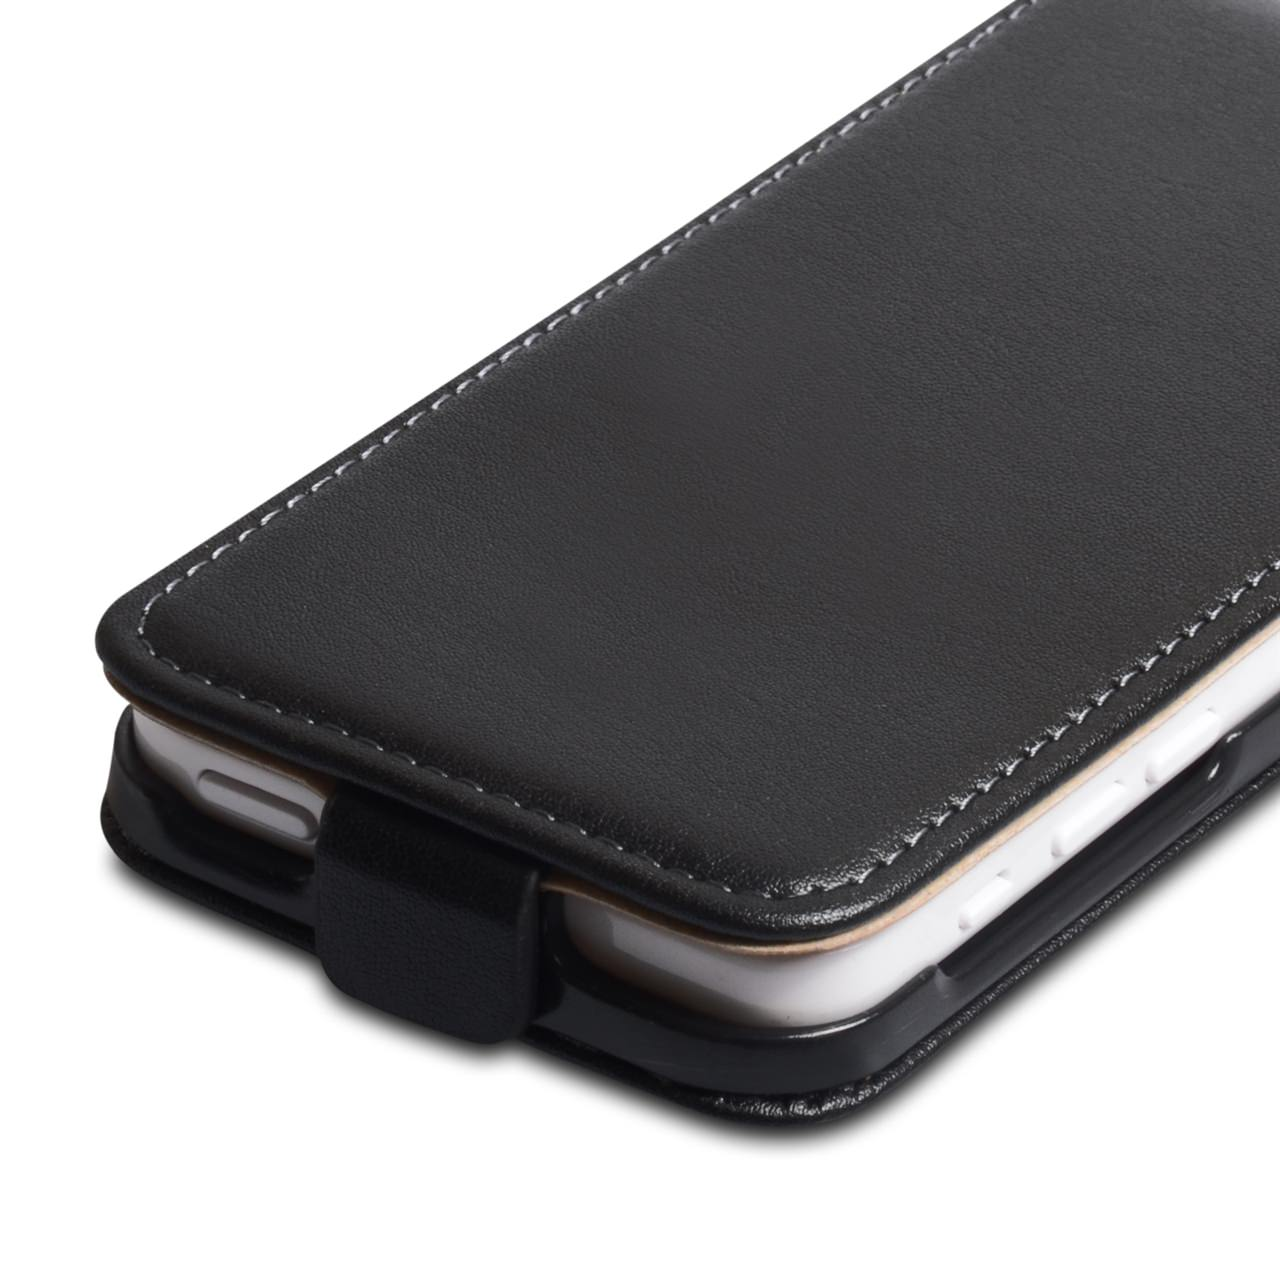 Caseflex iPhone 5C Real Leather Flip Case - Black